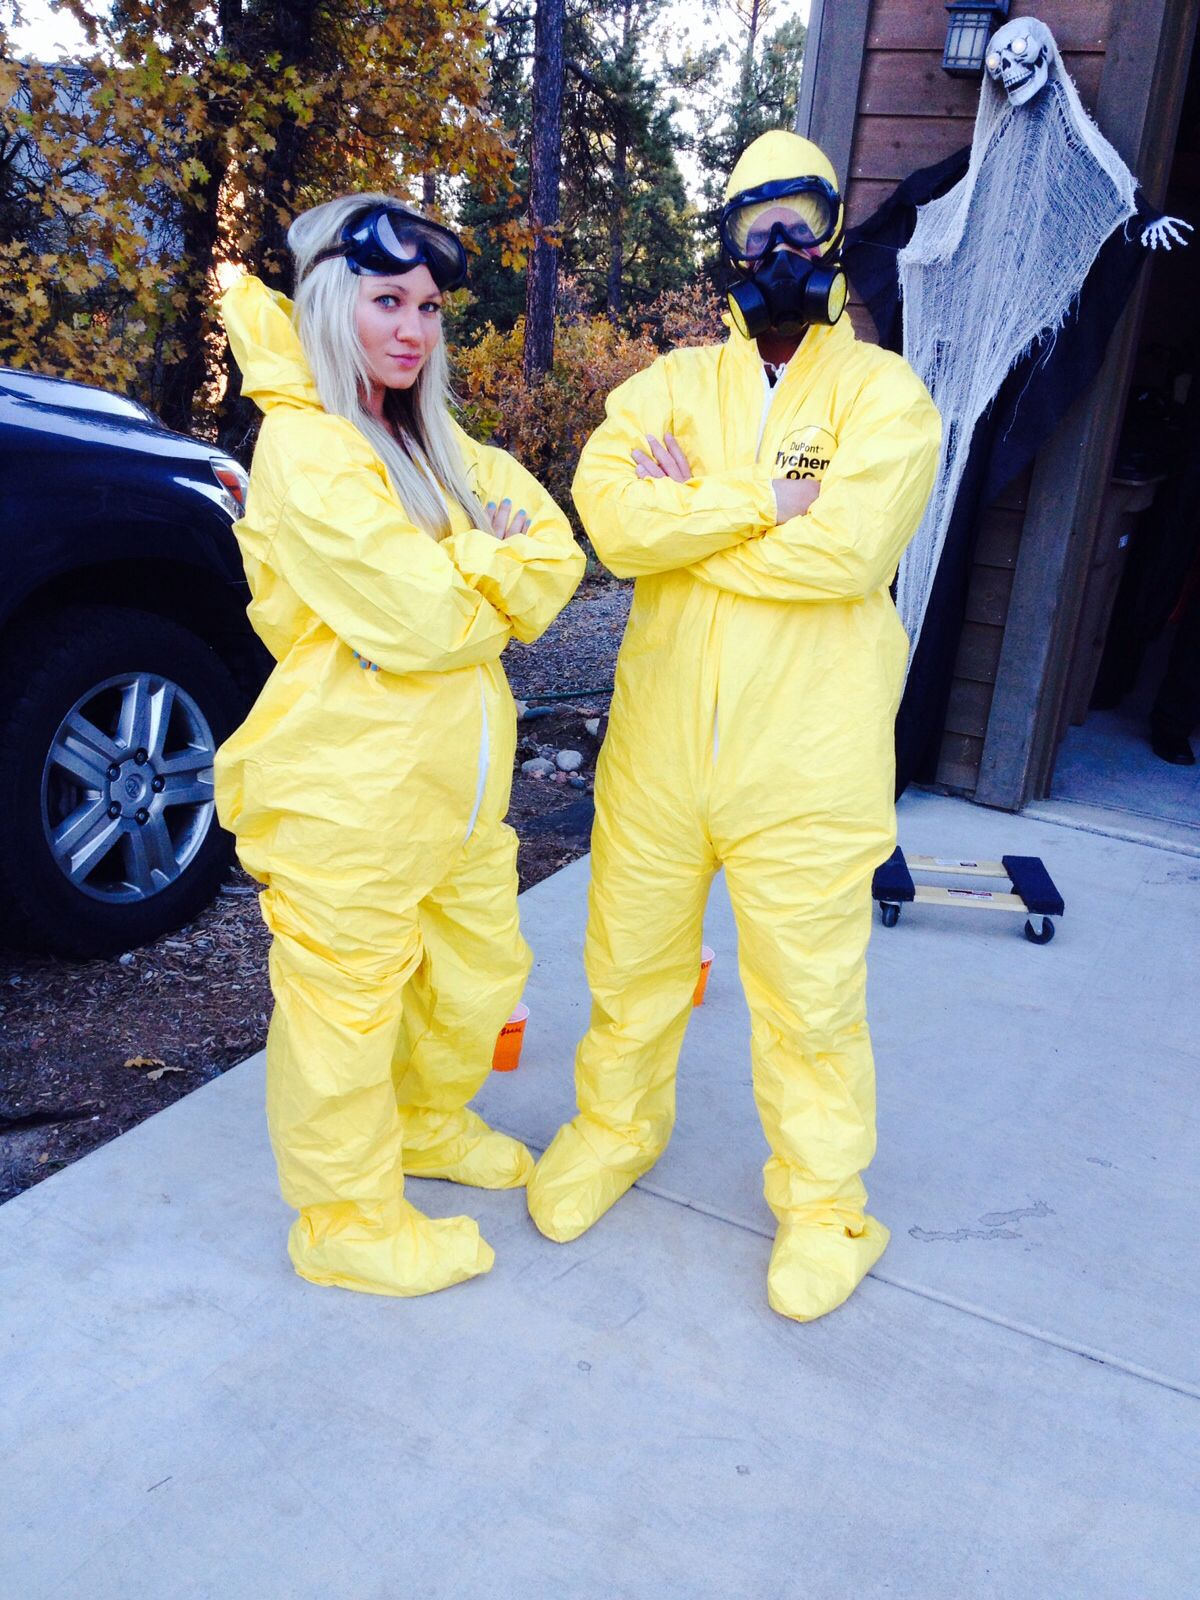 Breaking bad costume with images breaking bad costume